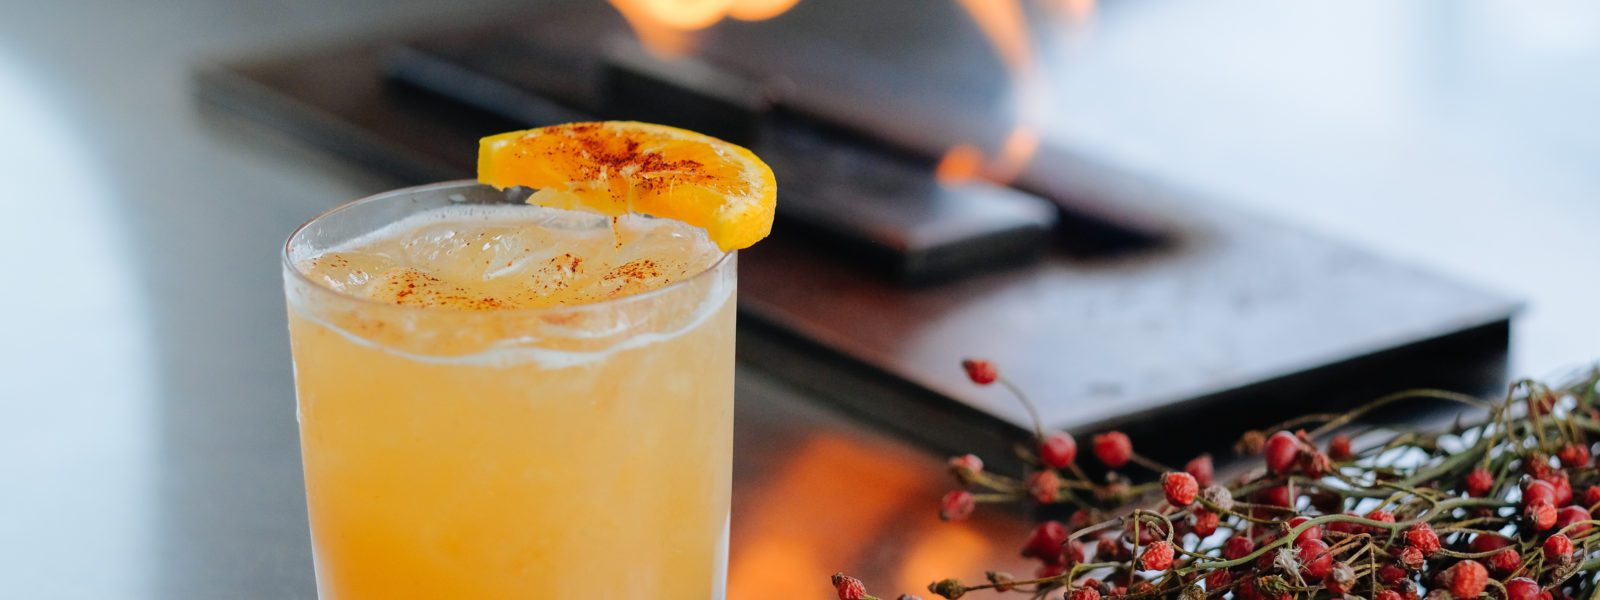 Cocktail with orange slice in front of fire orb, with holly berries.